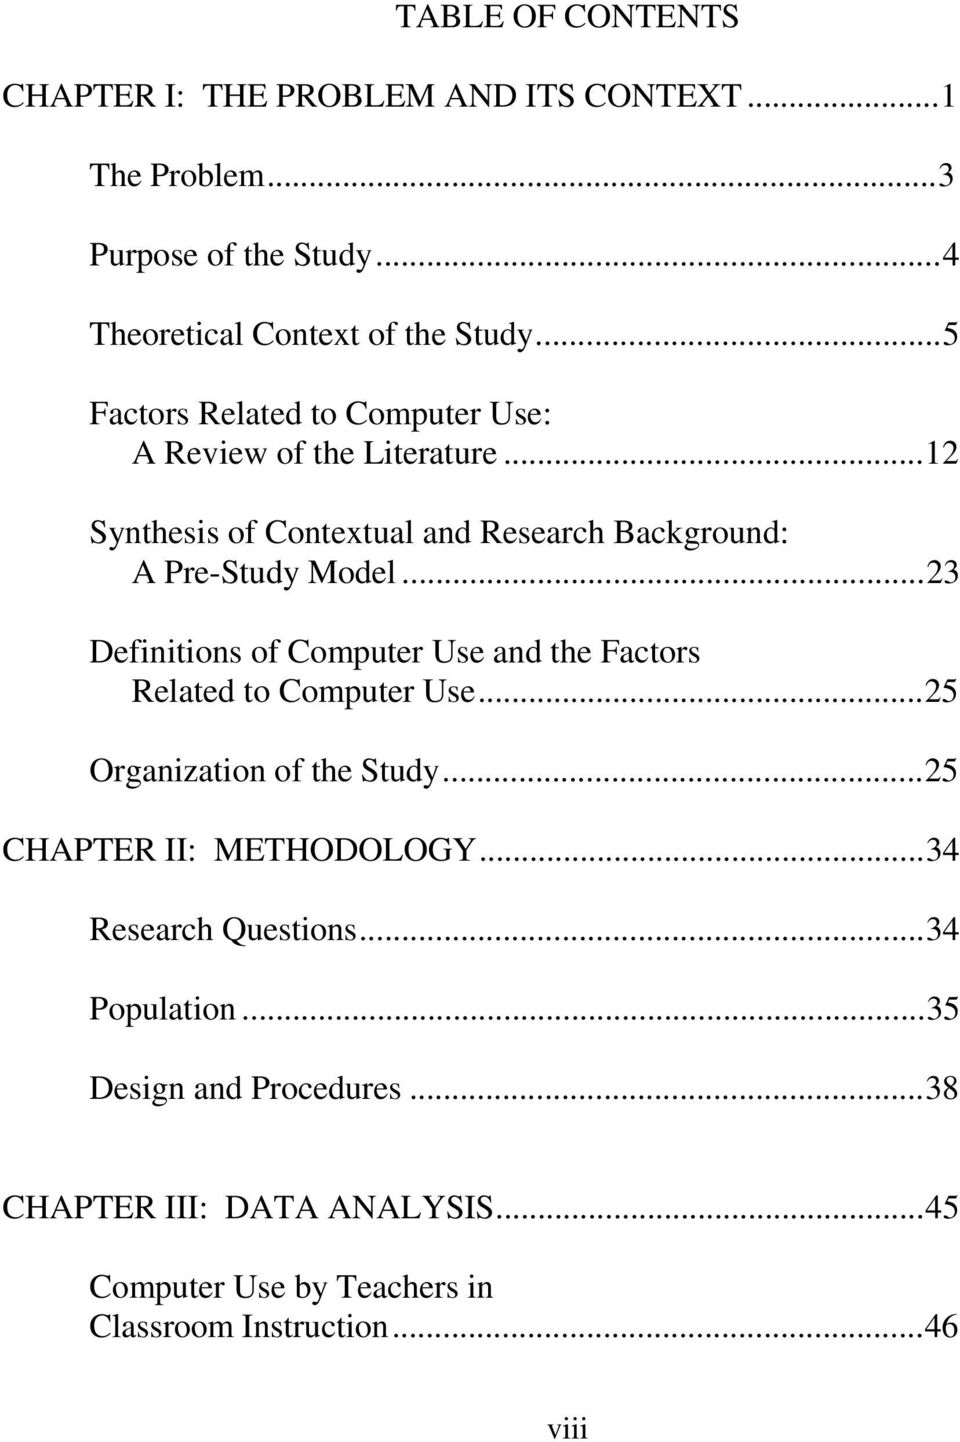 ..23 Definitions of Computer Use and the Factors Related to Computer Use...25 Organization of the Study...25 CHAPTER II: METHODOLOGY.